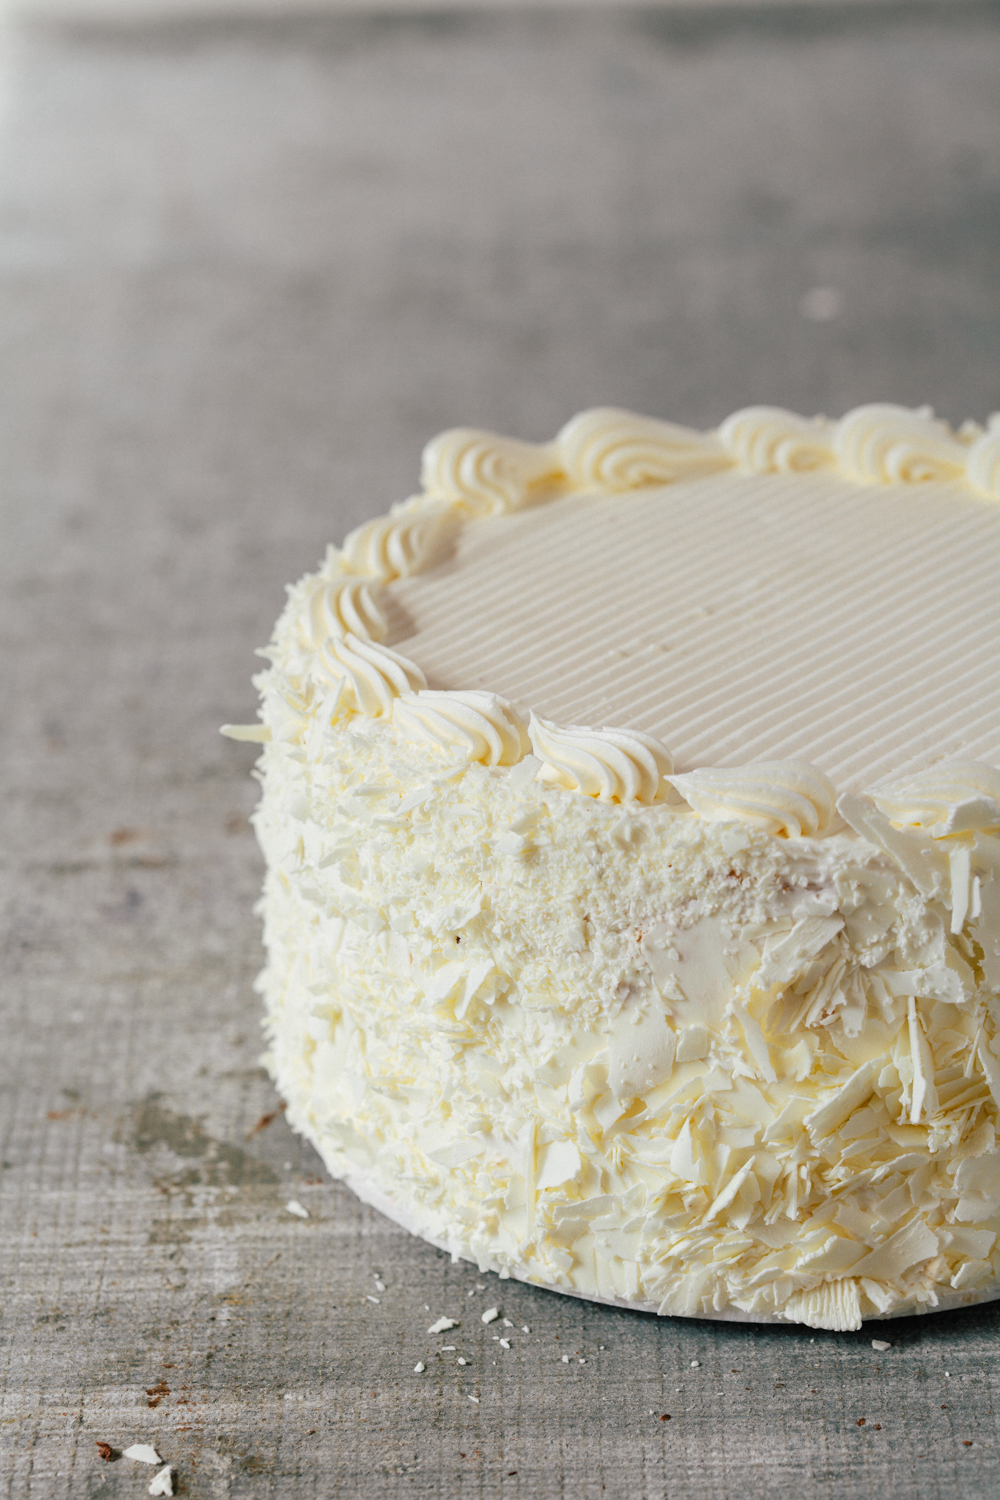 "Vanilla Cake: This cake is a three layer sponge cake and is filled with vanilla buttercream. White chocolate shavings cover the sides. Available daily in 7"" round."